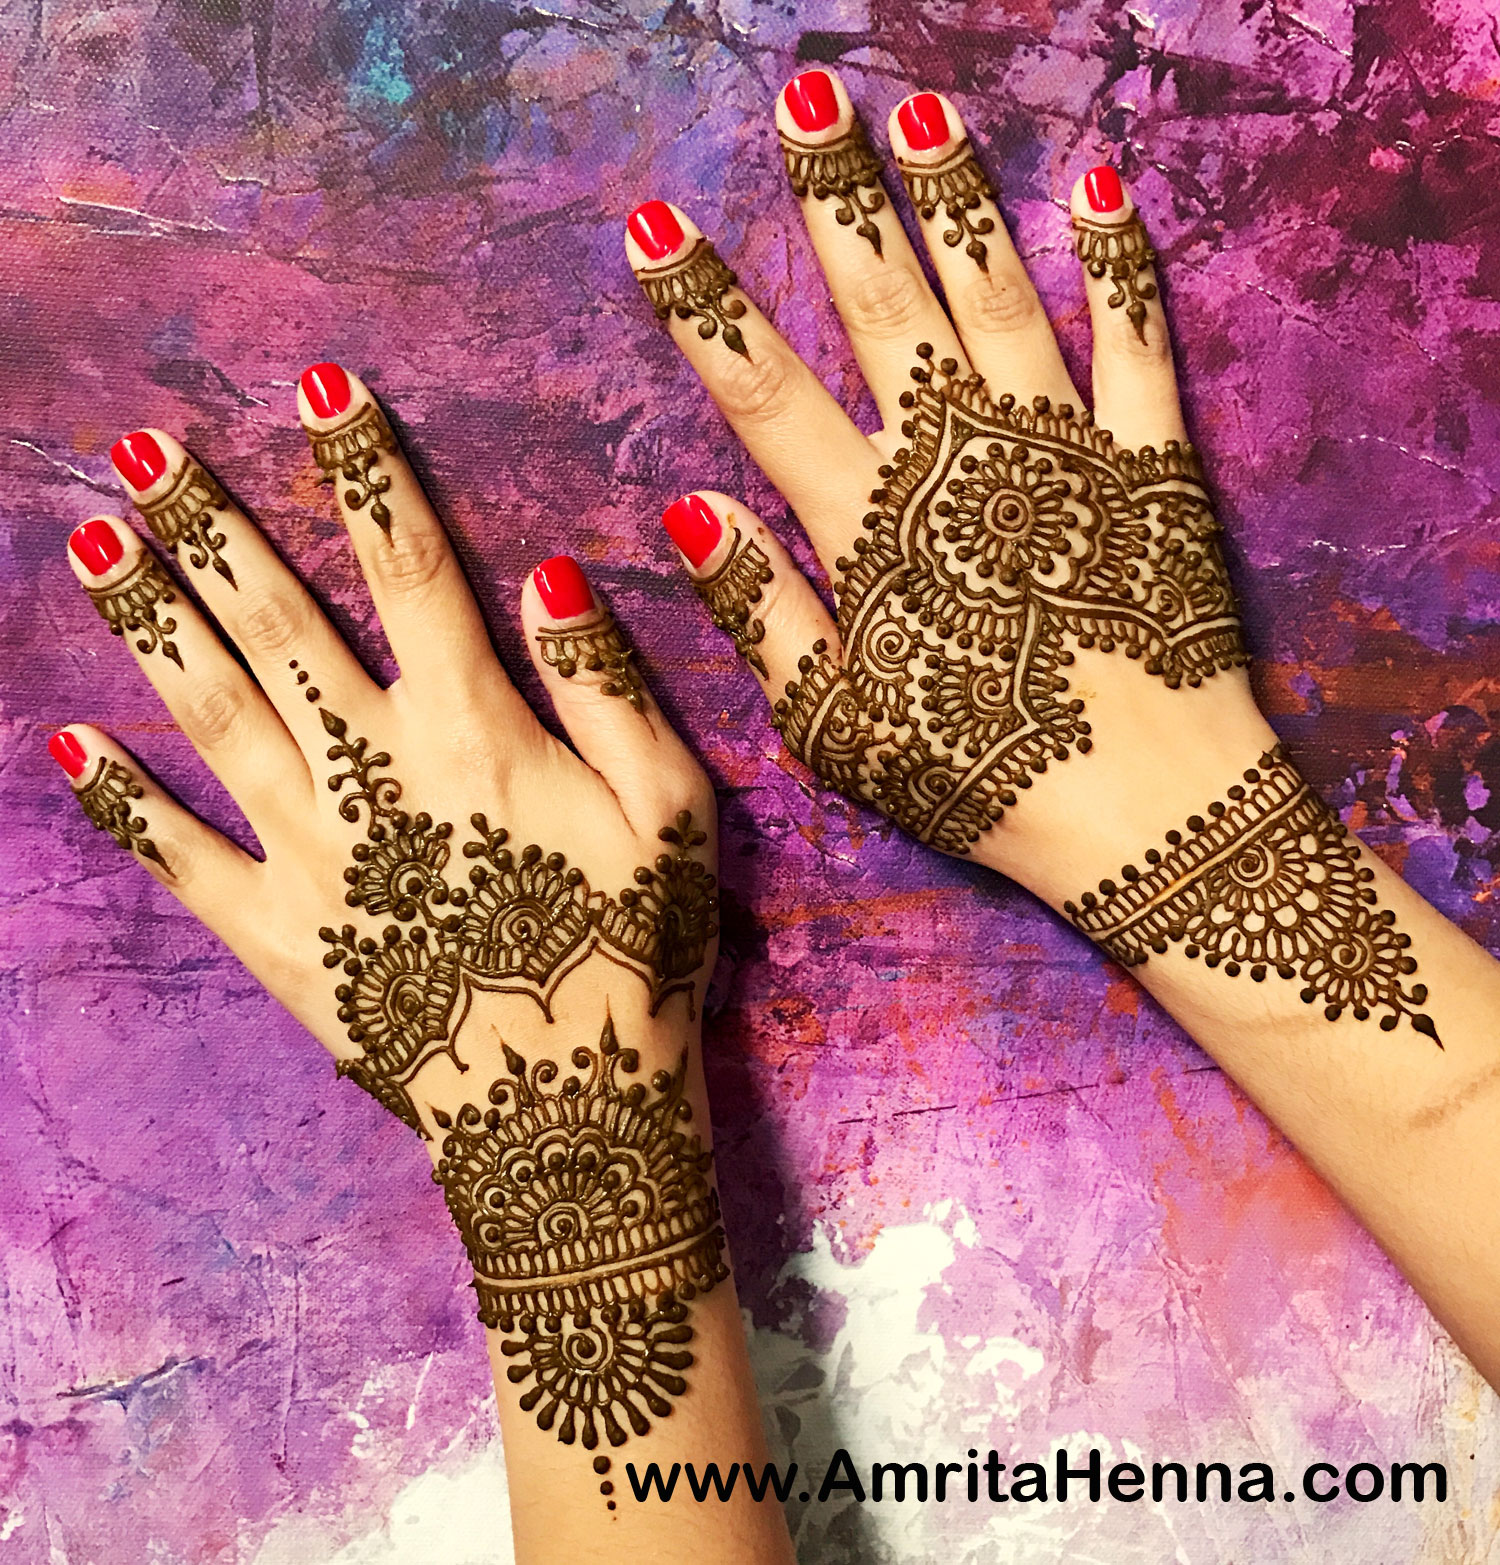 Henna Designs 2017 Instagram Home Garden